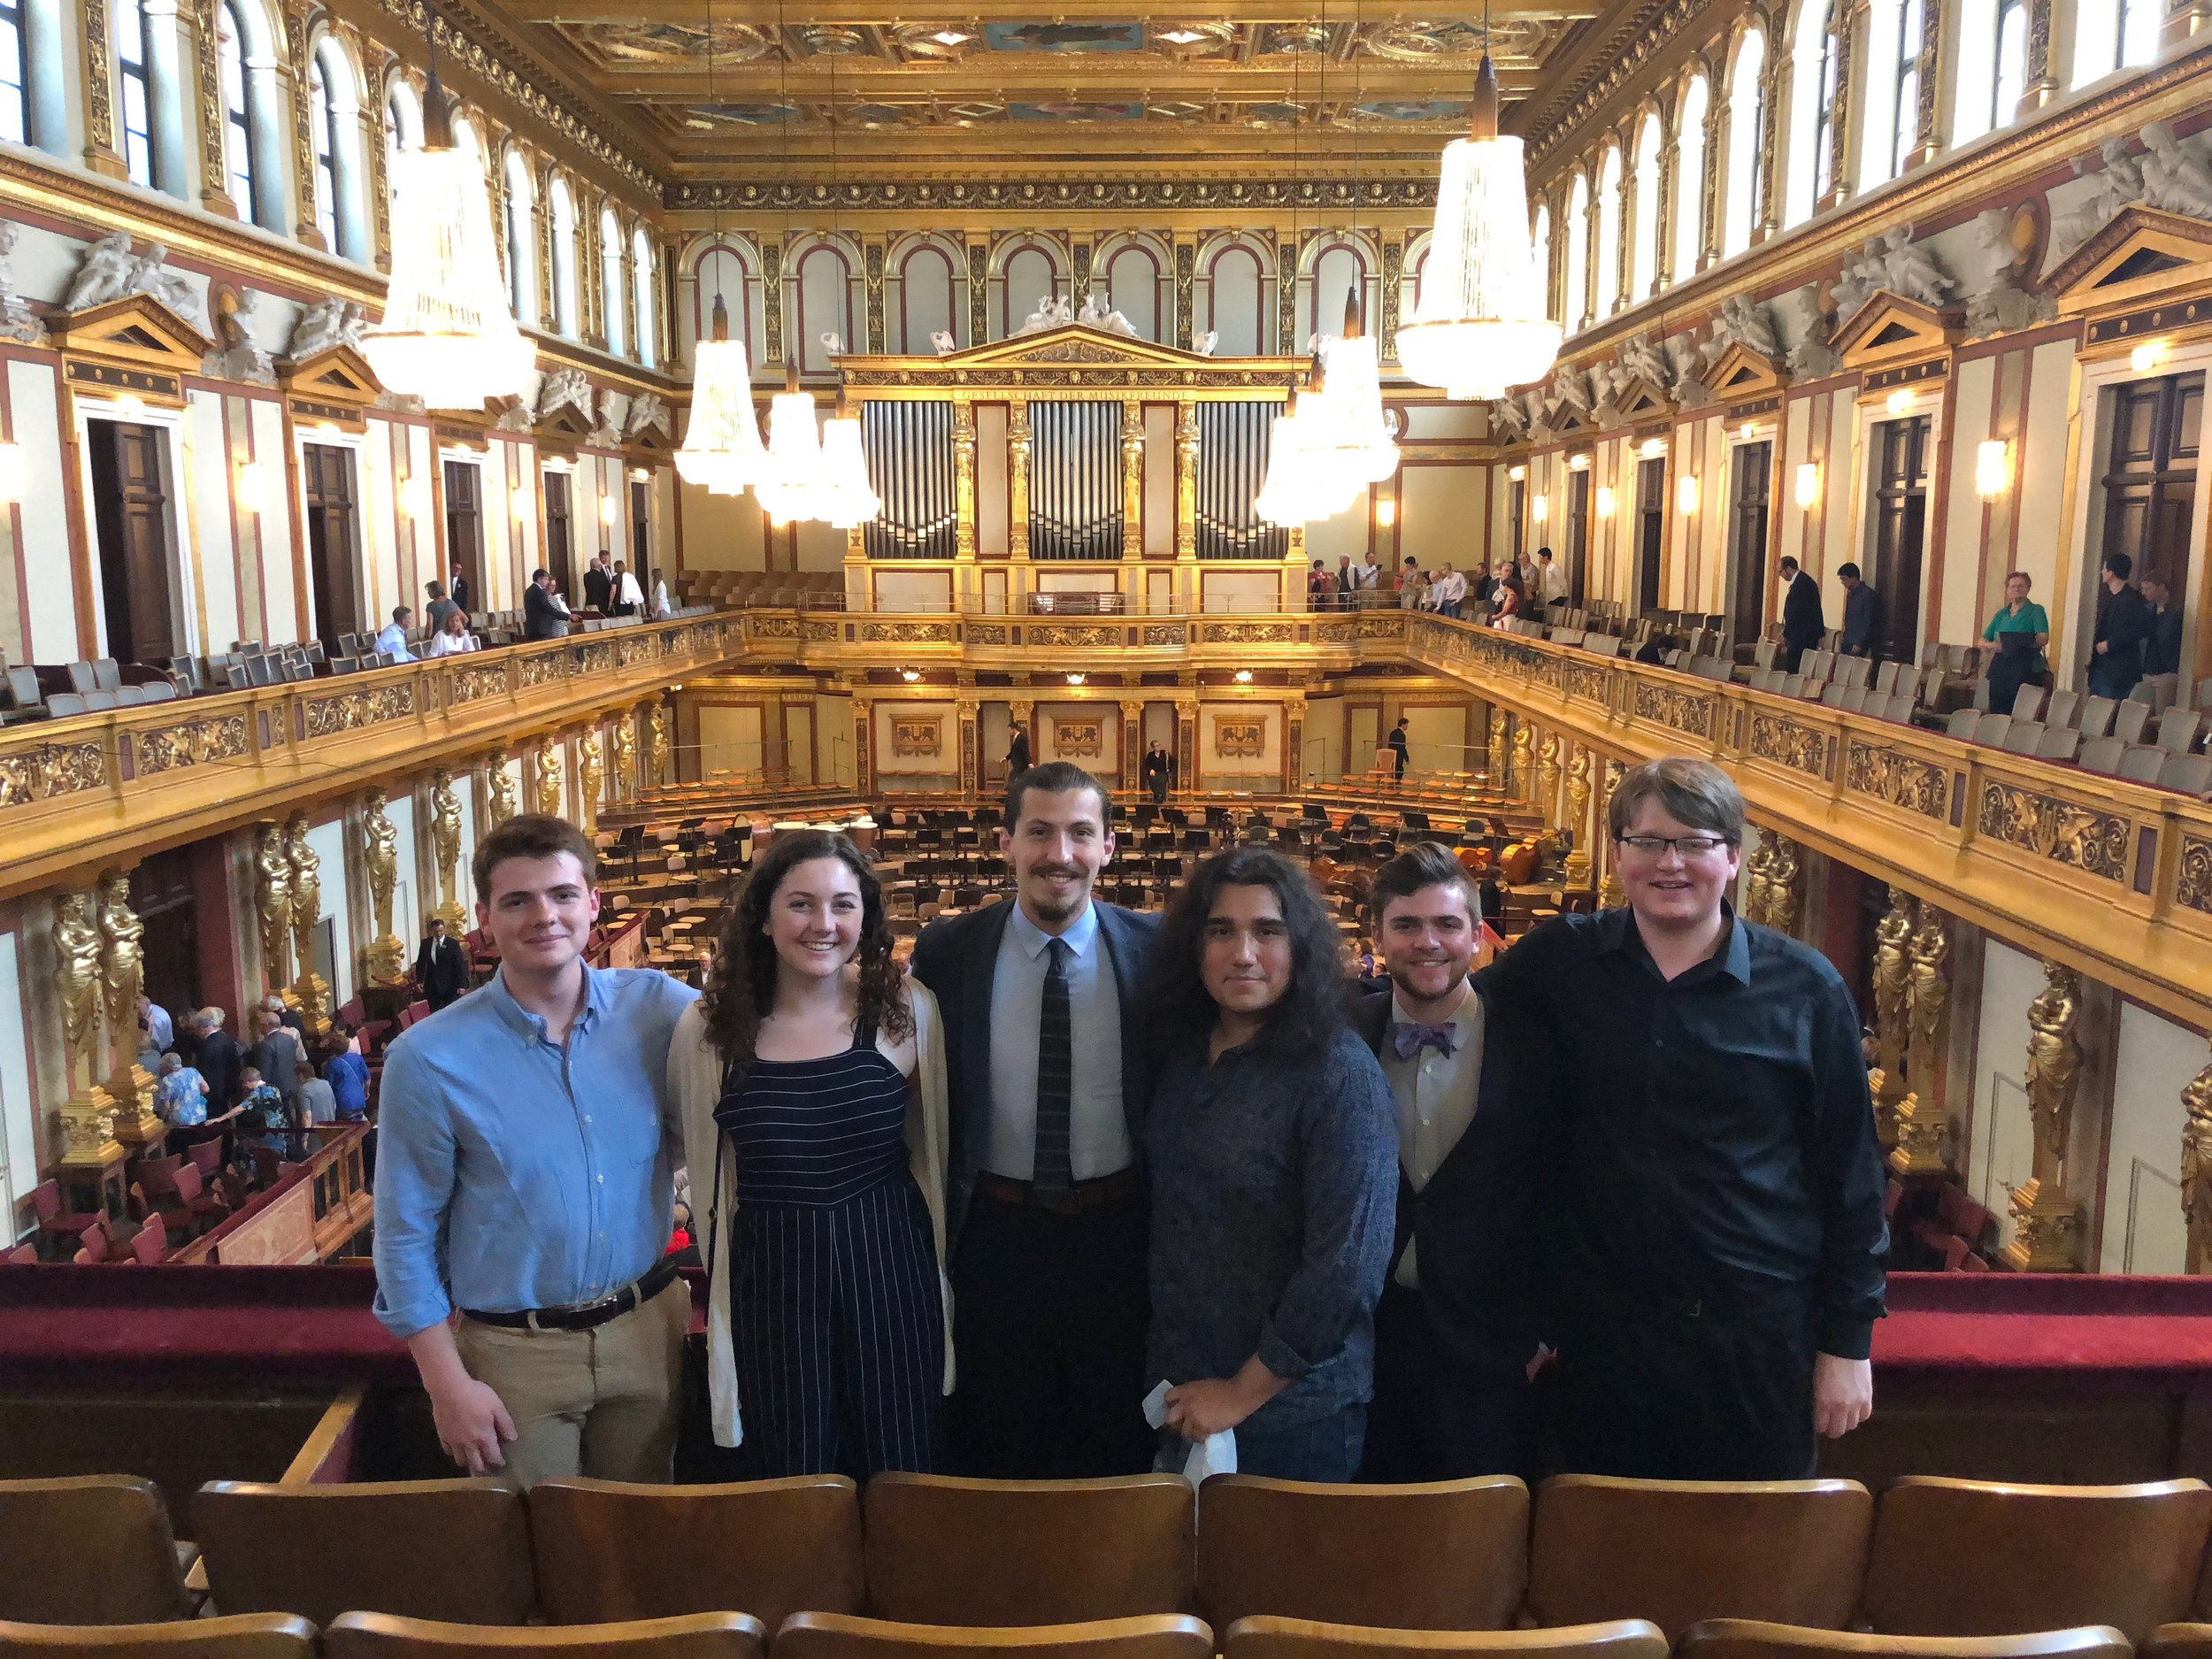 5 studio members in the Wiener Musikverein after a performance of Beethoven's 9th Symphony by the Vienna Philharmonic!